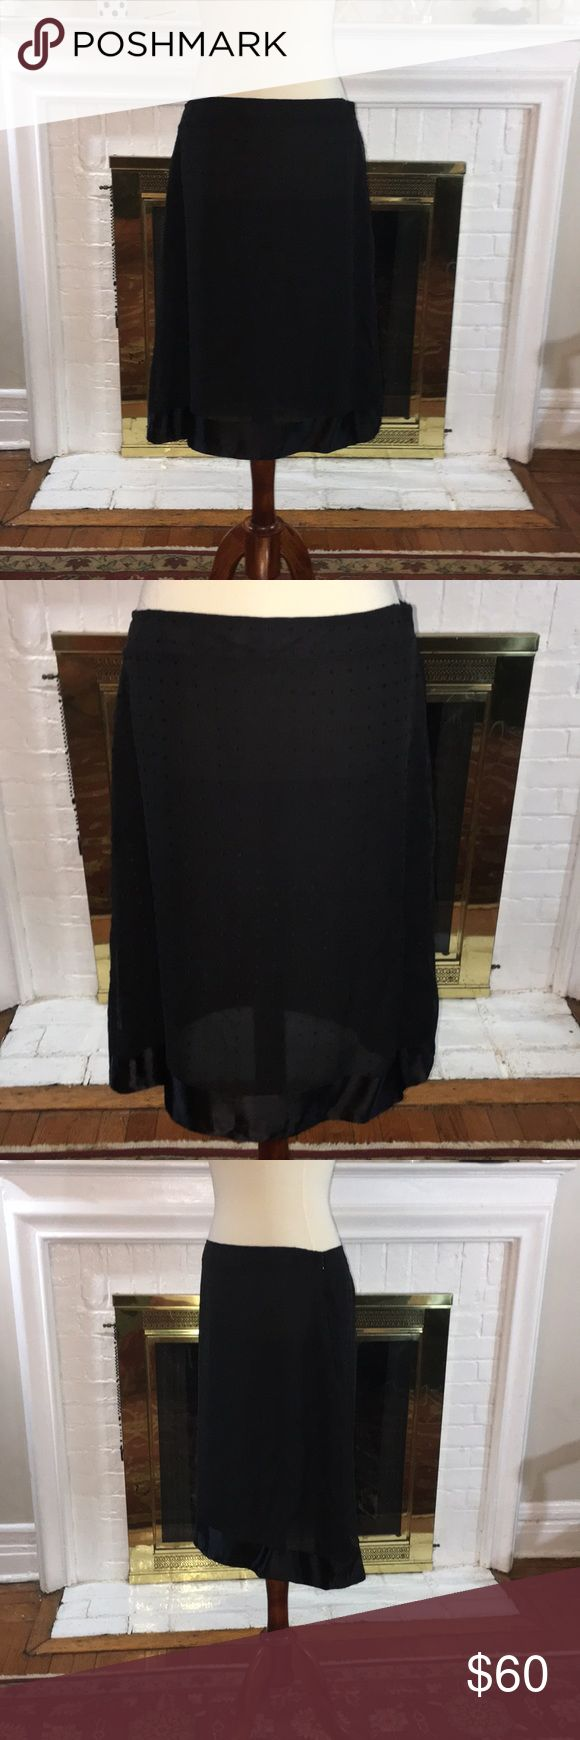 🌹Calvin Klein Silk lined black polka dot skirt 🌹 🌹Calvin Klein silk lined black polka dot skirt Sz 10. Please note all large sizes are pinned to Monique for proper firing 🌹 Calvin Klein Skirts A-Line or Full